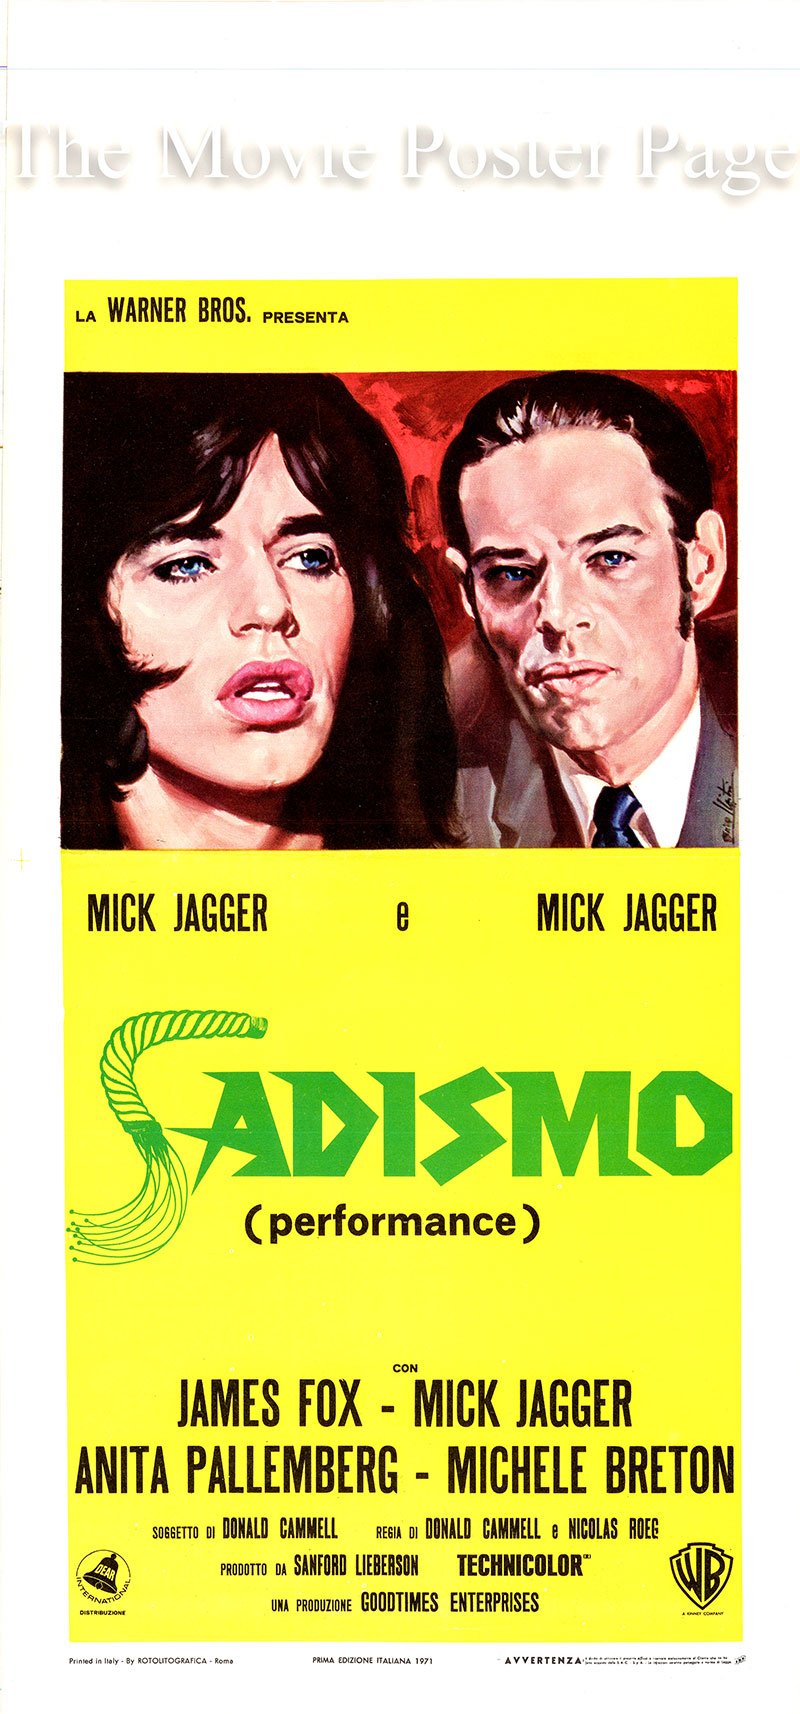 Pictured is an Italian locandina poster for a 1971 rerelease of the 1970 Donald Cammell and Nicolas Roeg film <i>Performance</i> starring Mick Jagger as Turner.